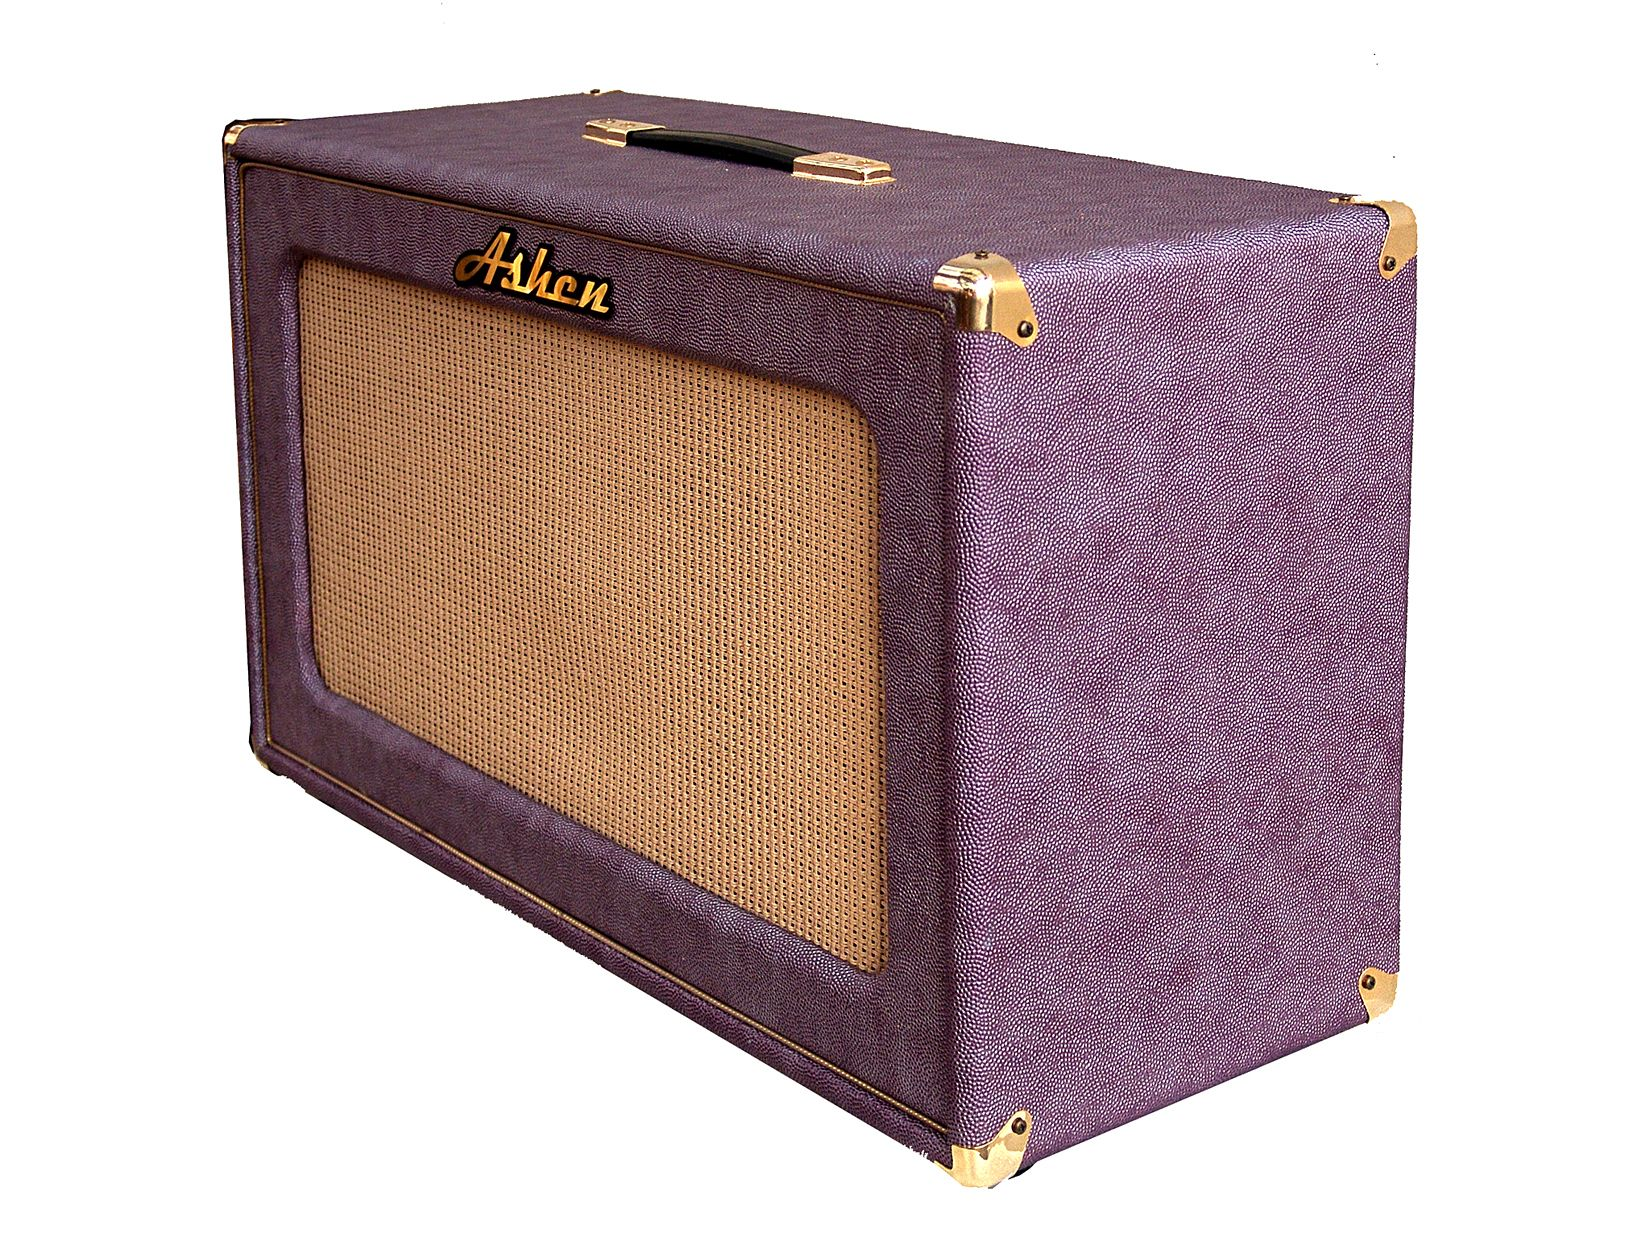 buy hand crafted ashen violet 212 boutique handmade guitar amp cabinet empty no speakers. Black Bedroom Furniture Sets. Home Design Ideas